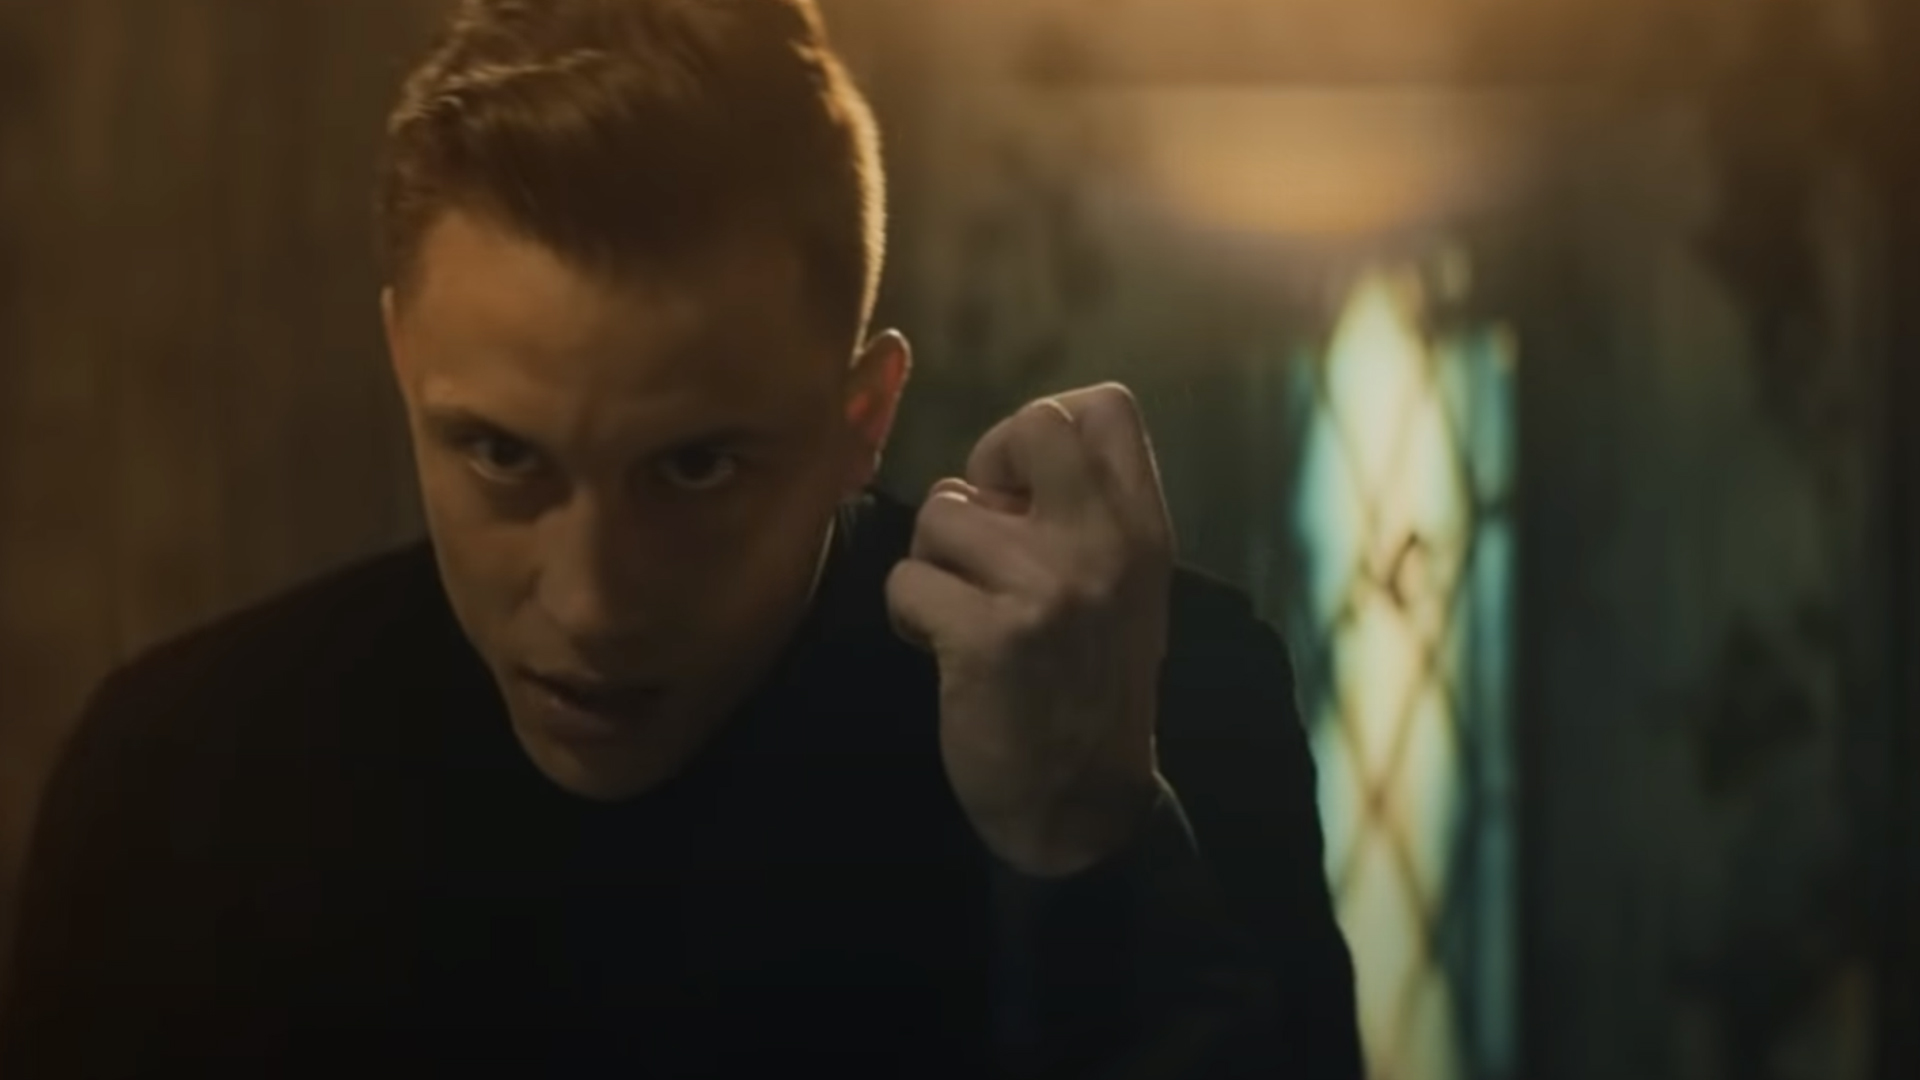 Loic nottet mud blood